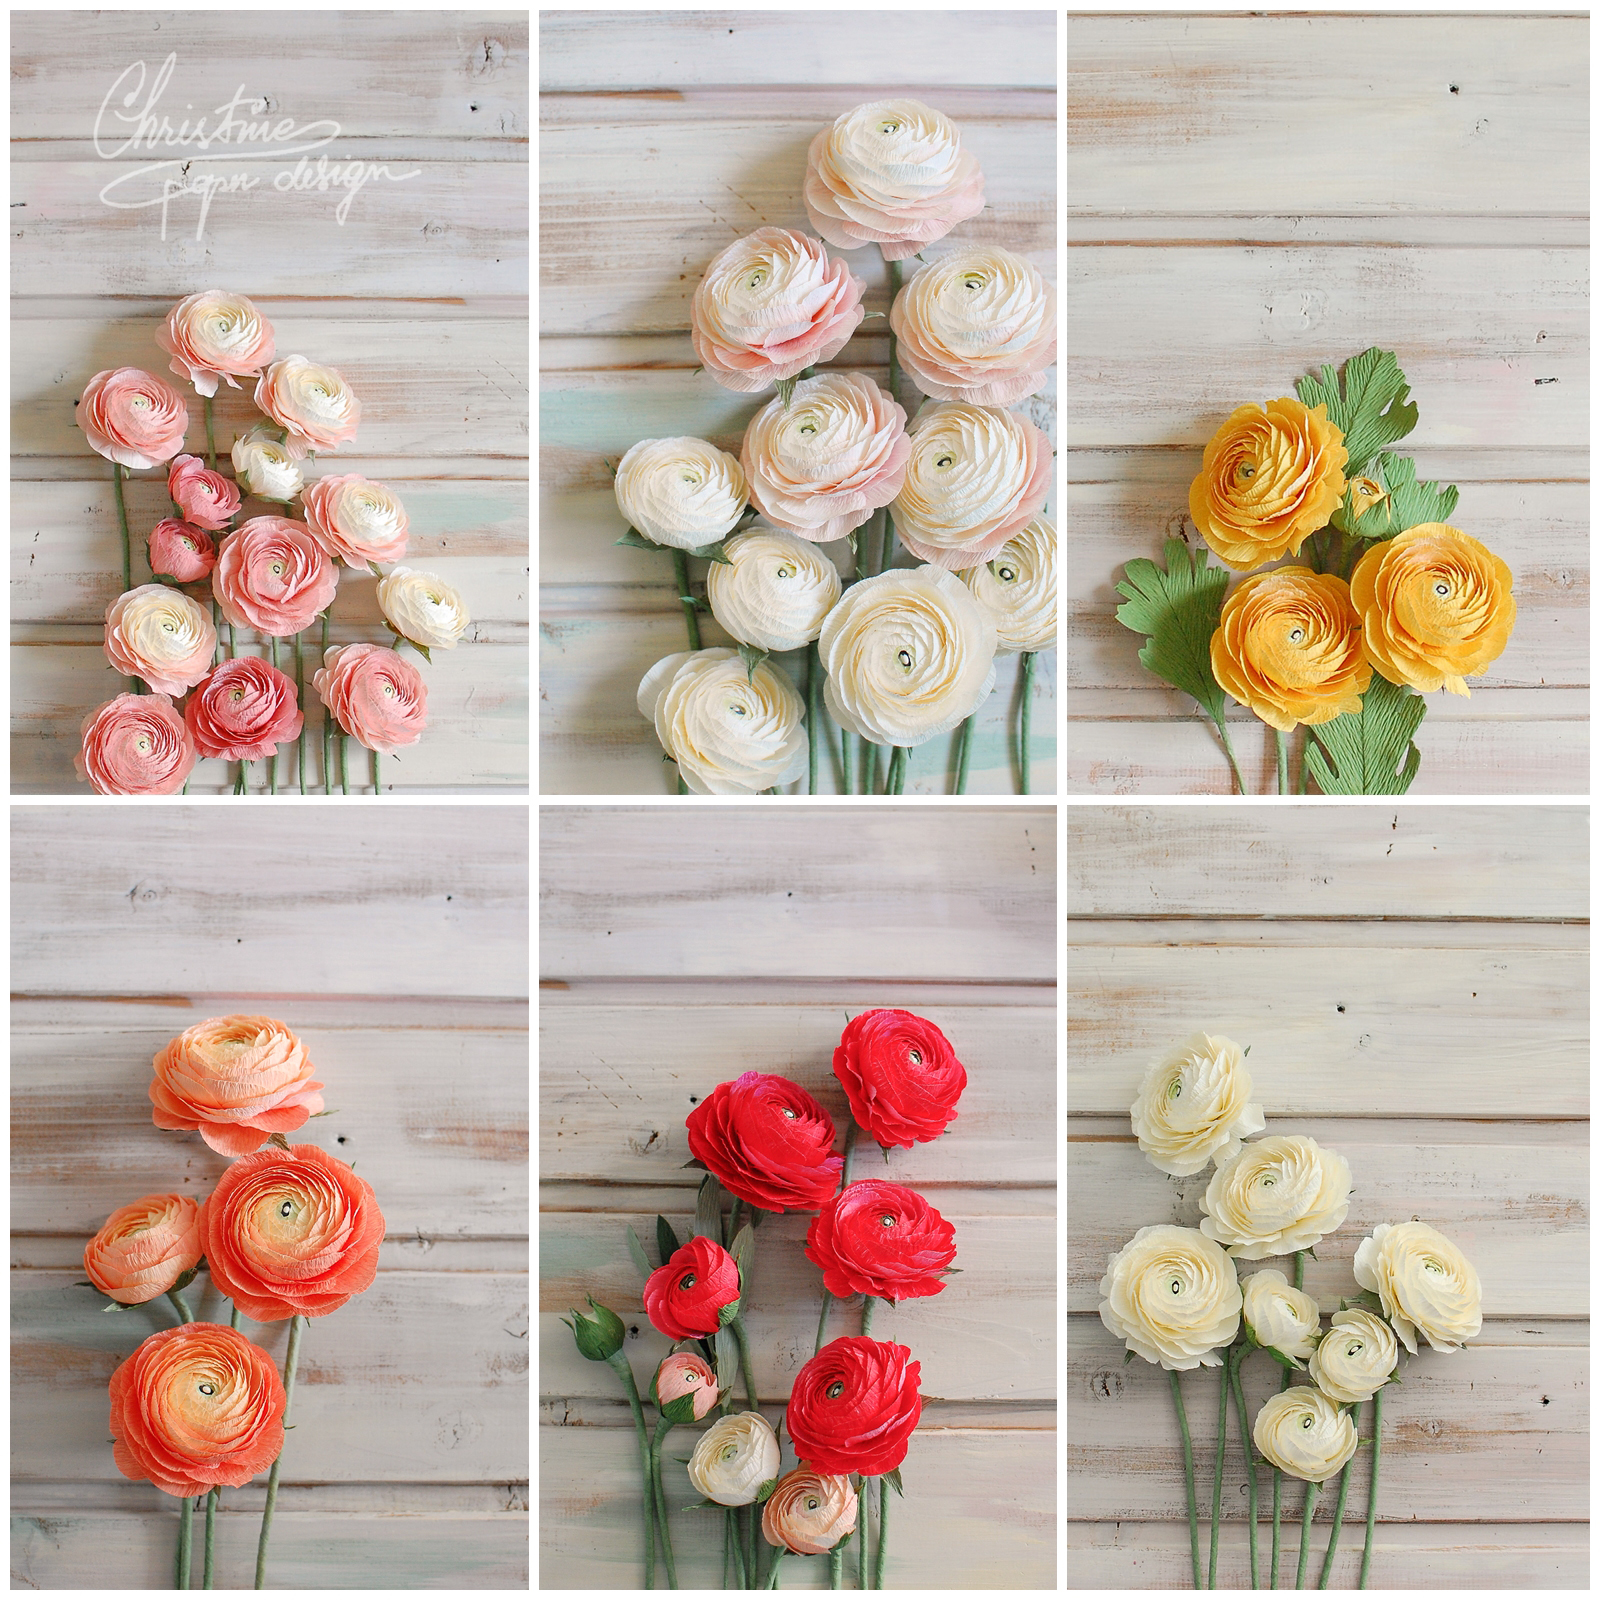 ranunculus by Christinepaperdesign